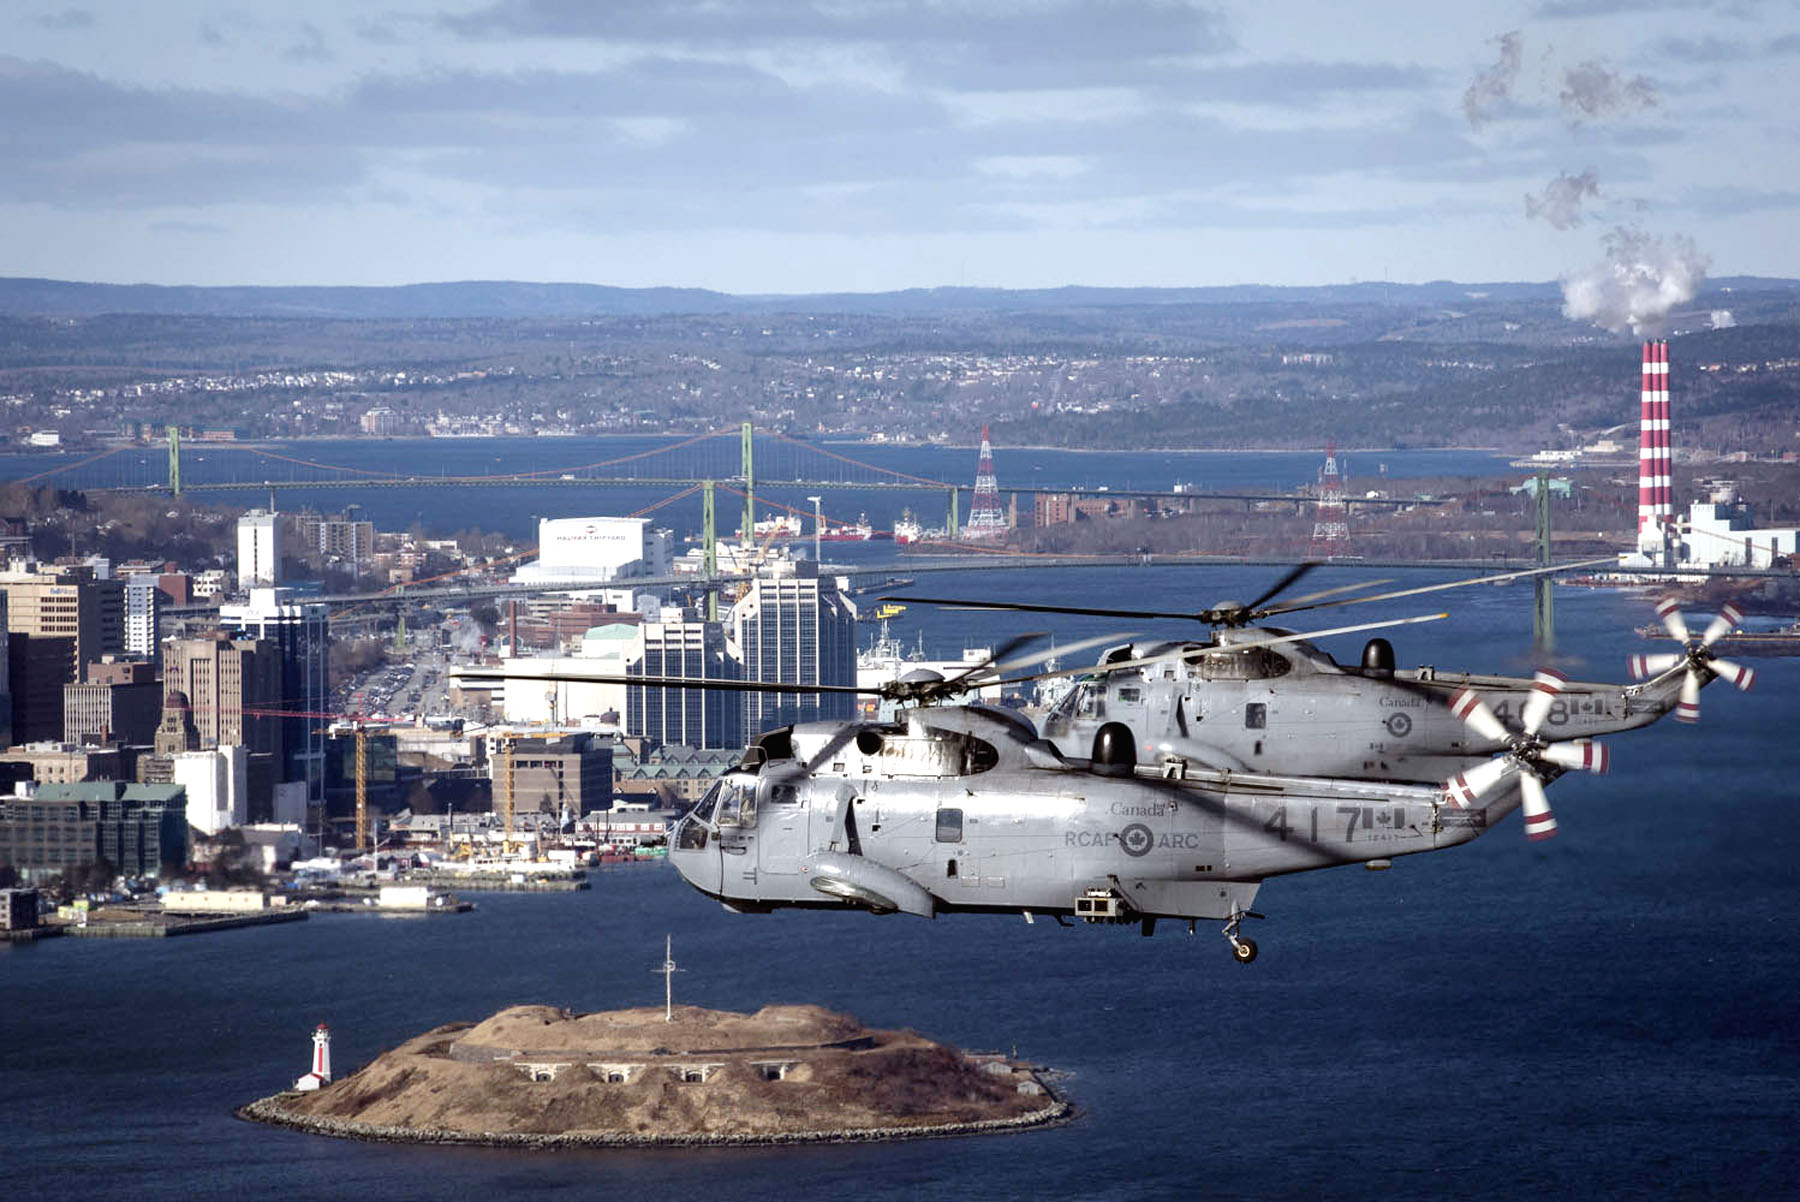 Sea King helicopters from 423 Maritime Helicopter Squadron, fly over Halifax Harbour on January 26, 2018.